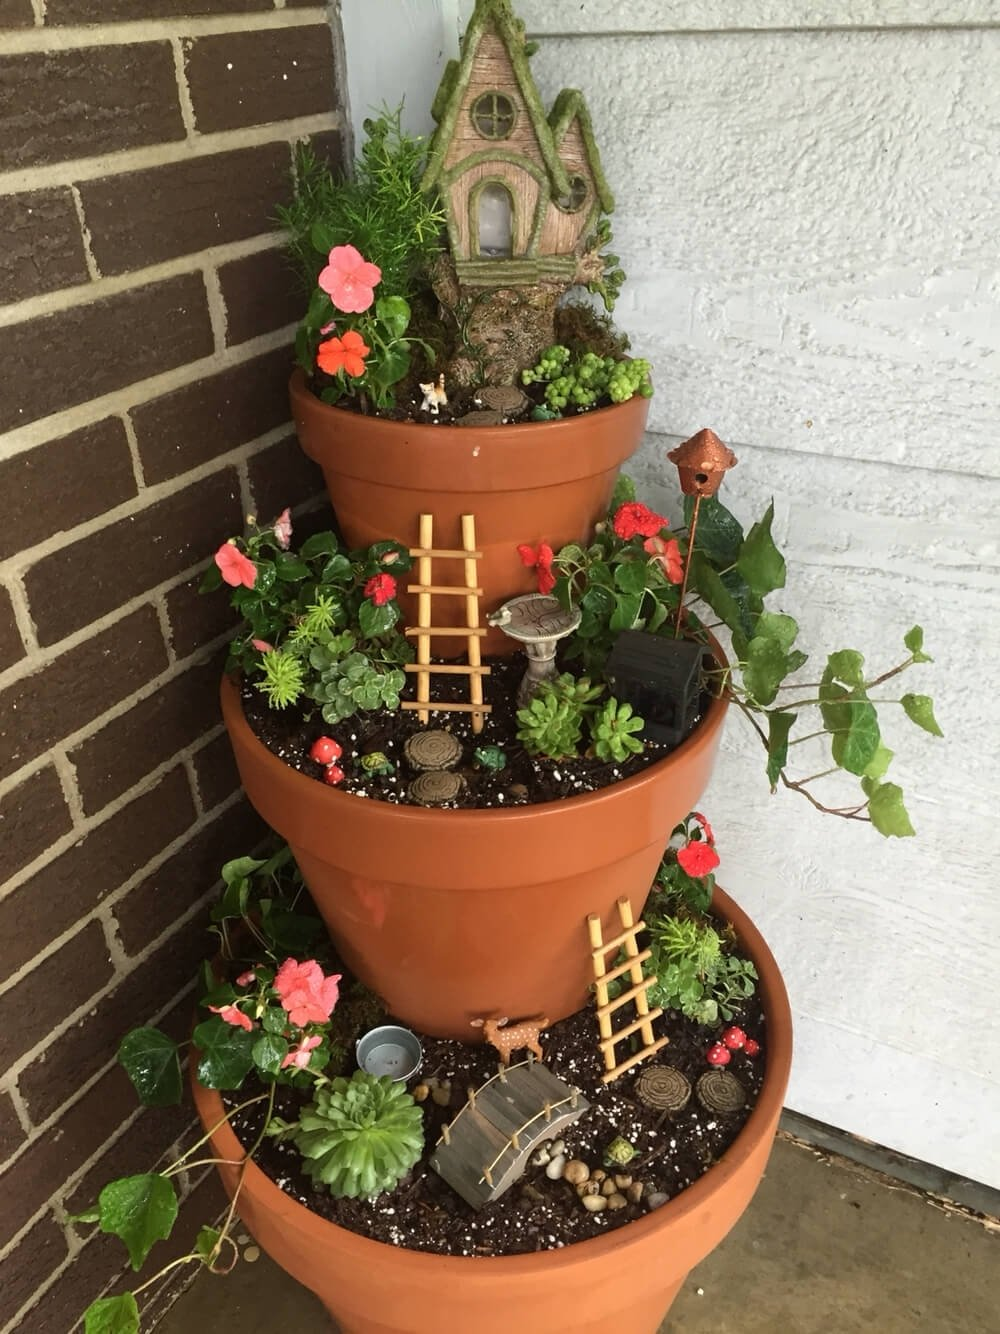 10 Awesome Planter Ideas For Front Porch 29 best front door flower pots ideas and designs for 2018 3 2021